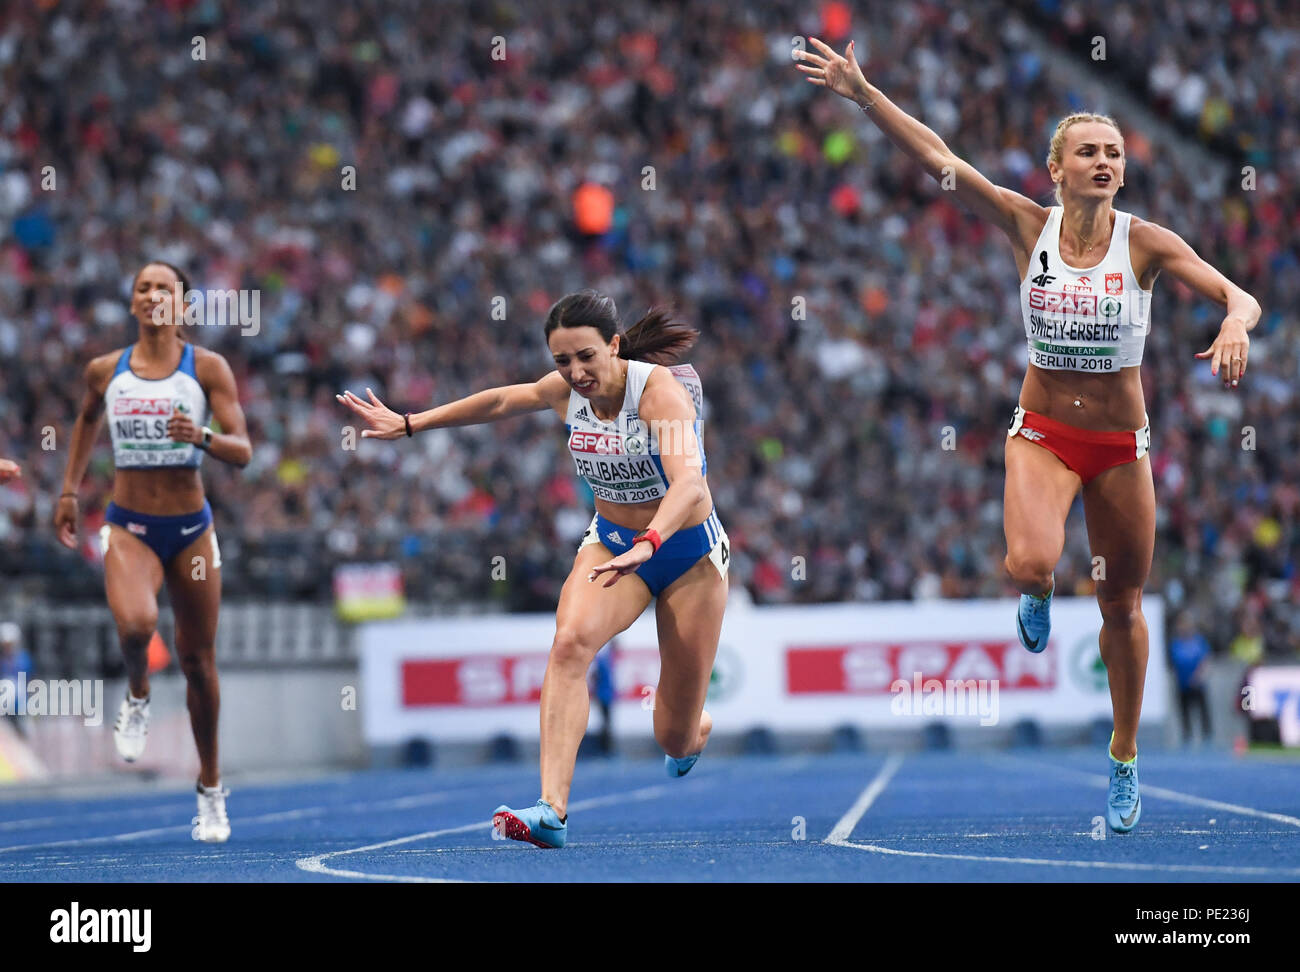 Berlin, Germany. 11th Aug, 2018. European Athletics Championships in the Olympic Stadium: 400 m final, women: (L-R) Laviai Nielsen from Great Britain, Maria Belibasaki from Greece and Justyna Swiety-Ersetic from Poland in action. Credit: Sven Hoppe/dpa/Alamy Live News - Stock Image